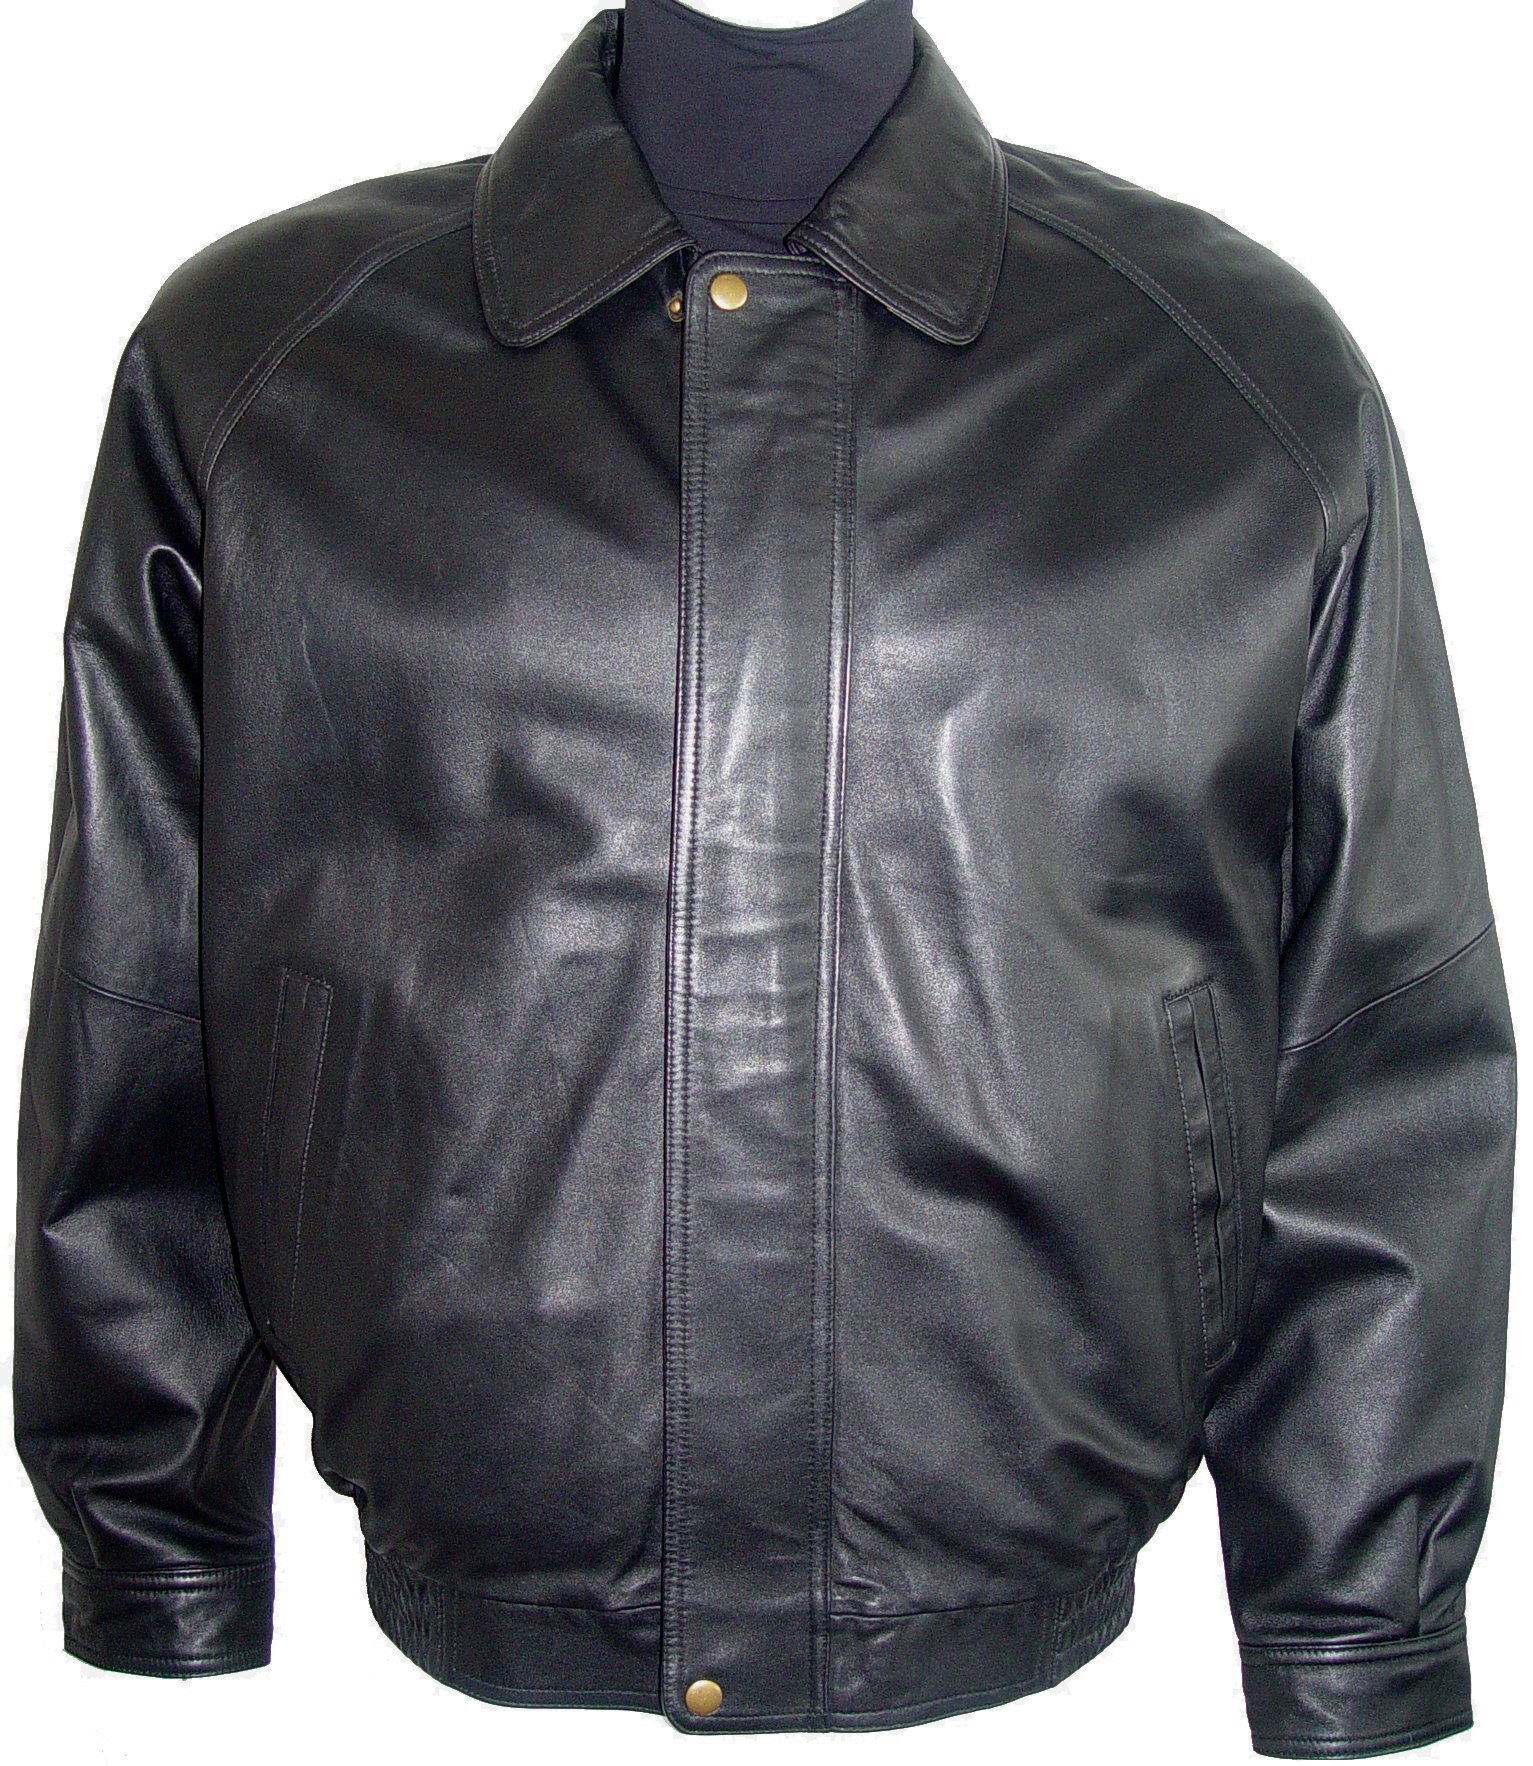 Paccilo 1026 Big Man Black Leather Bomber Jacket & Coats Silky Fabric Lining